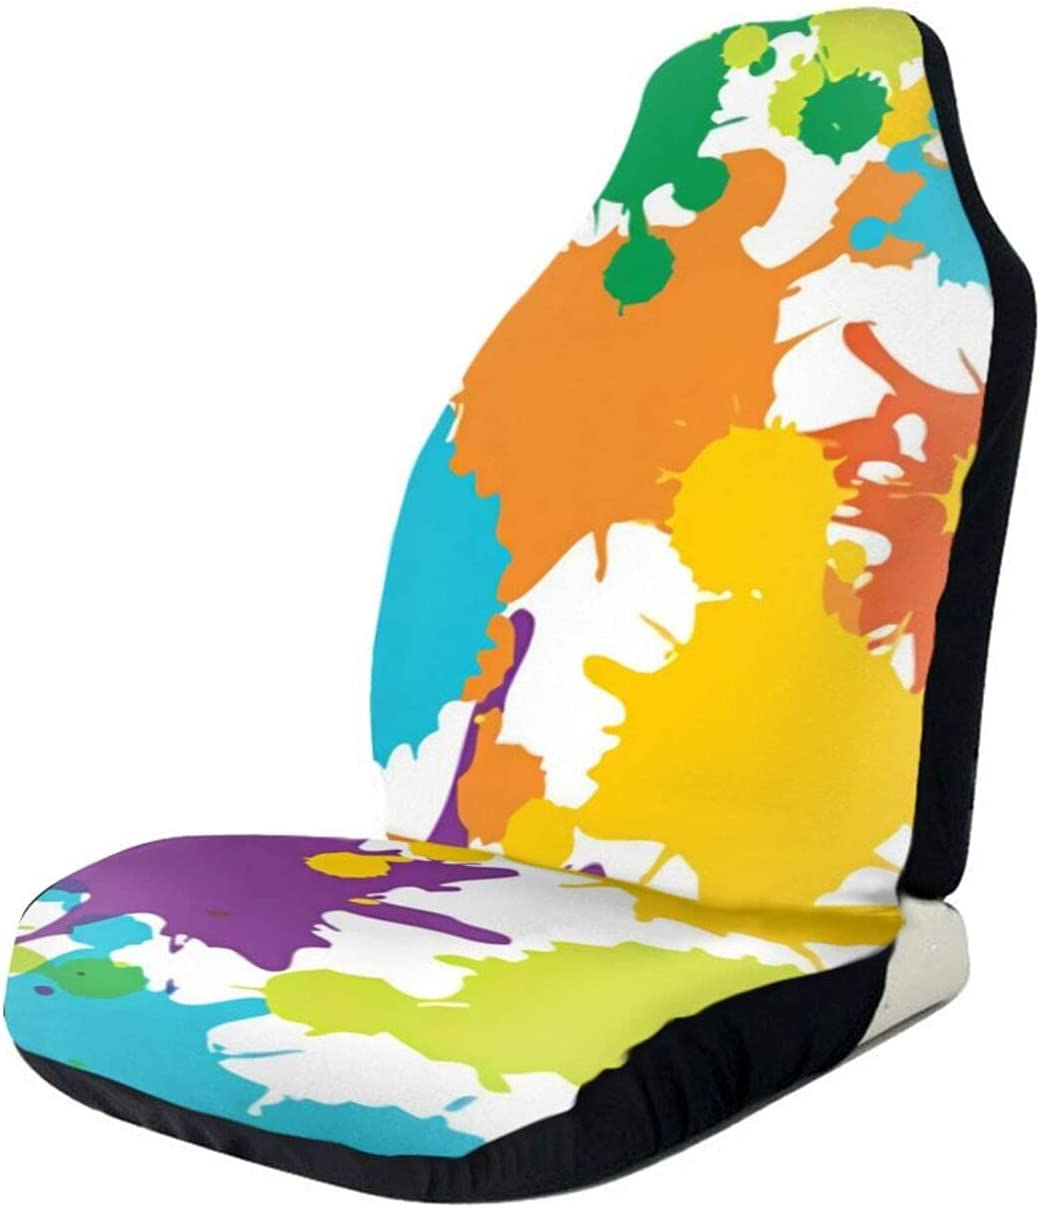 Special Campaign Car Seat New Shipping Free Covers Interesting Paint Painting Vehicle Front 1 S Pcs